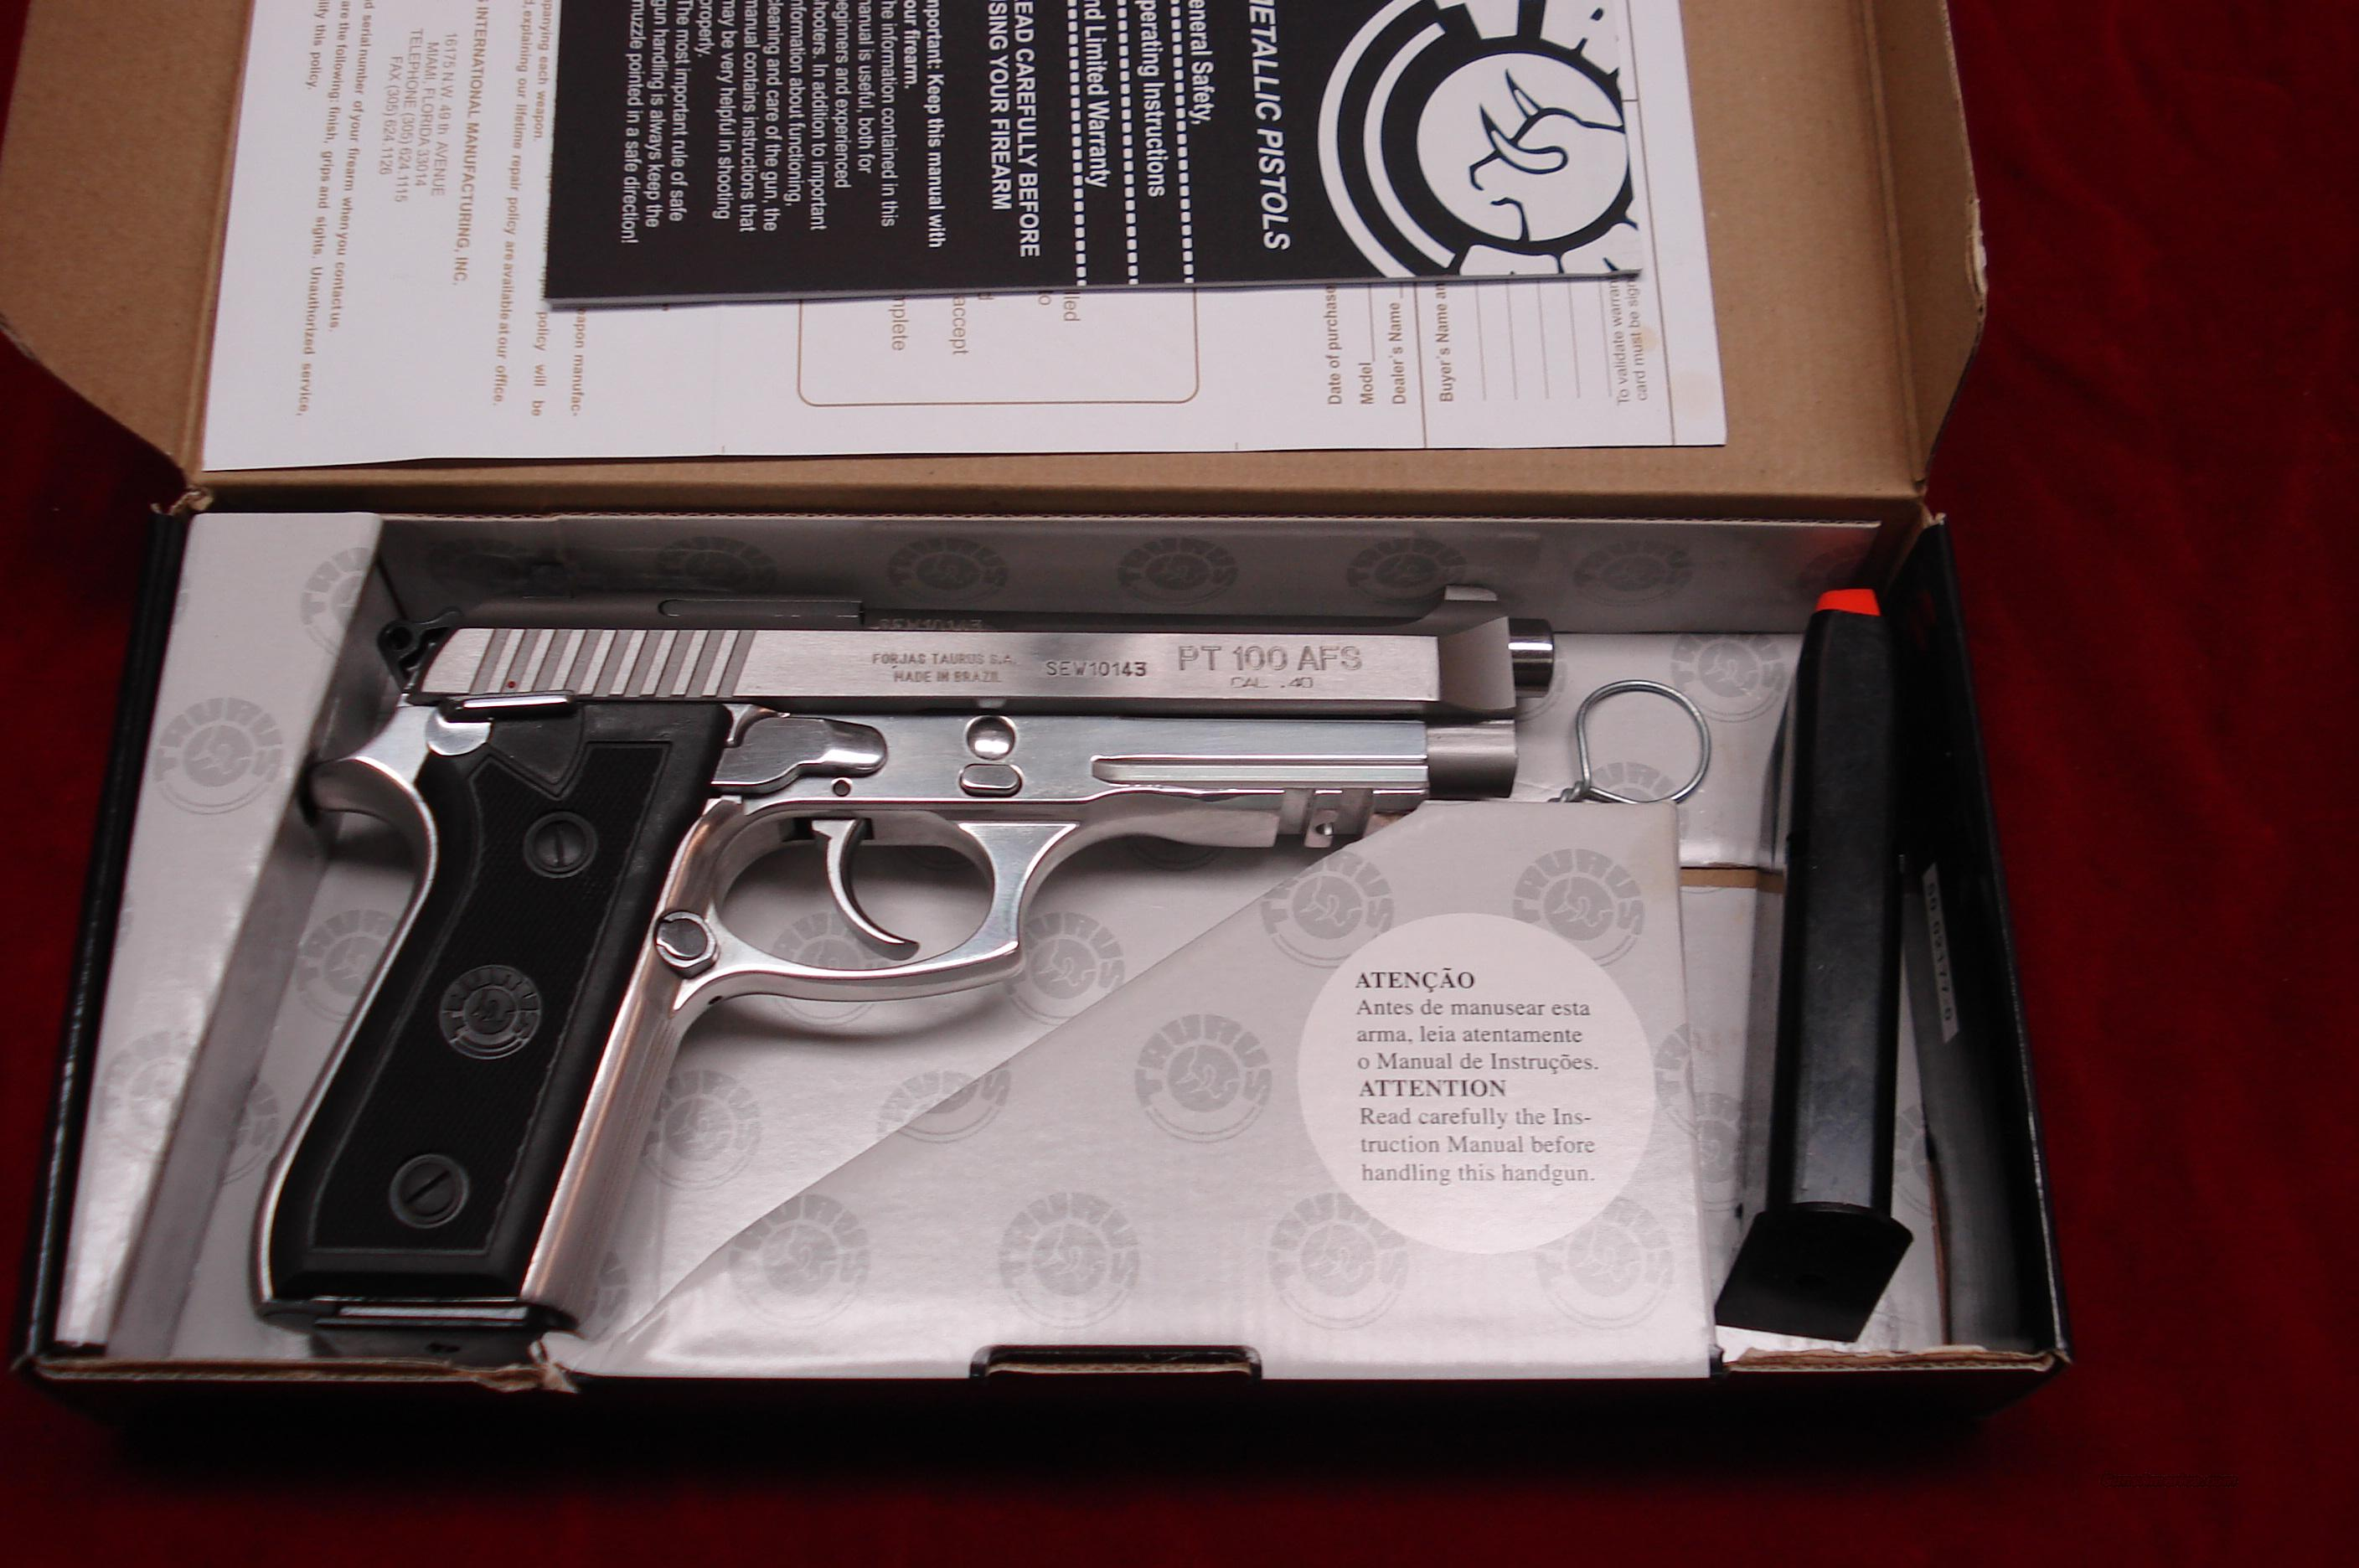 TAURUS PT 100 AFS STAINLESS .40CAL W/TAC RAIL NEW   Guns > Pistols > Taurus Pistols/Revolvers > Pistols > Steel Frame